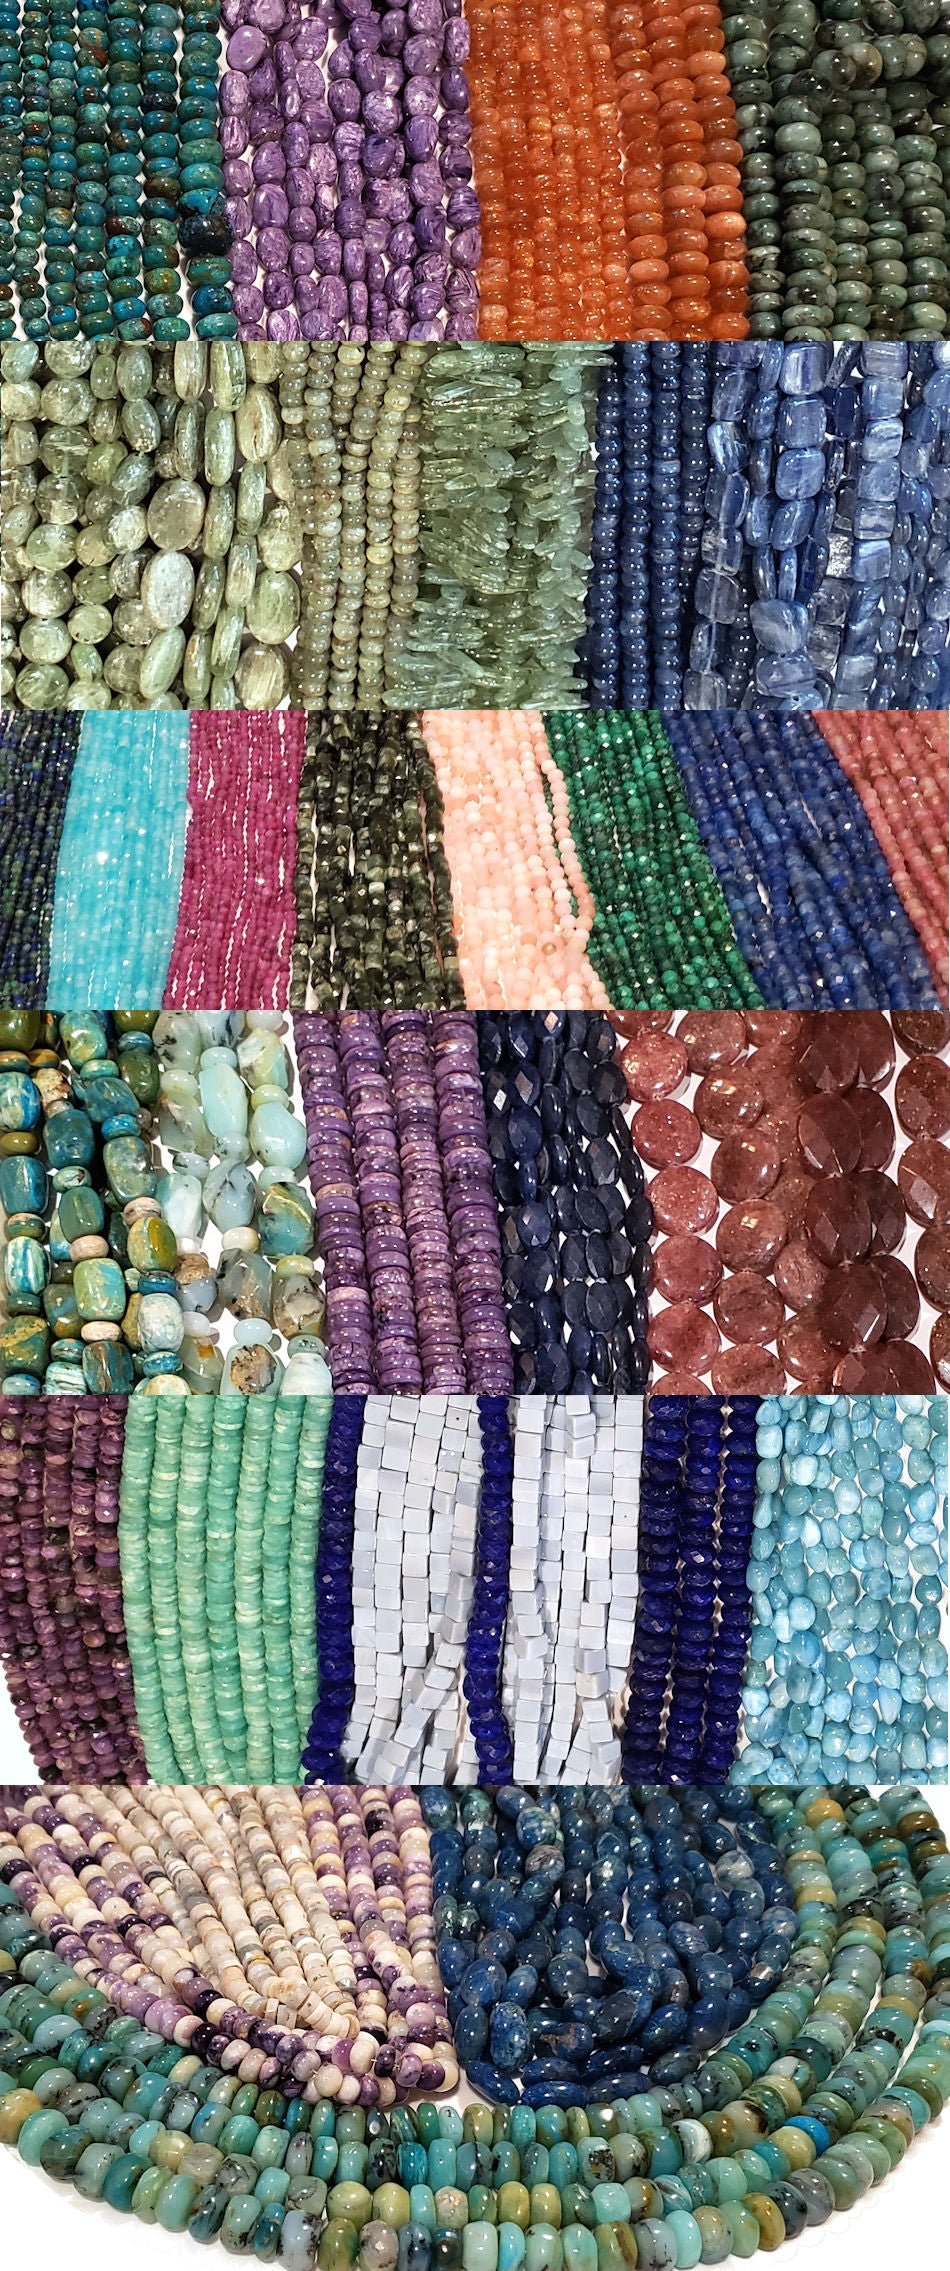 Gemstone beads coming soon from the Tucson Gem Shows 2021 at www.stonesnsilver.com